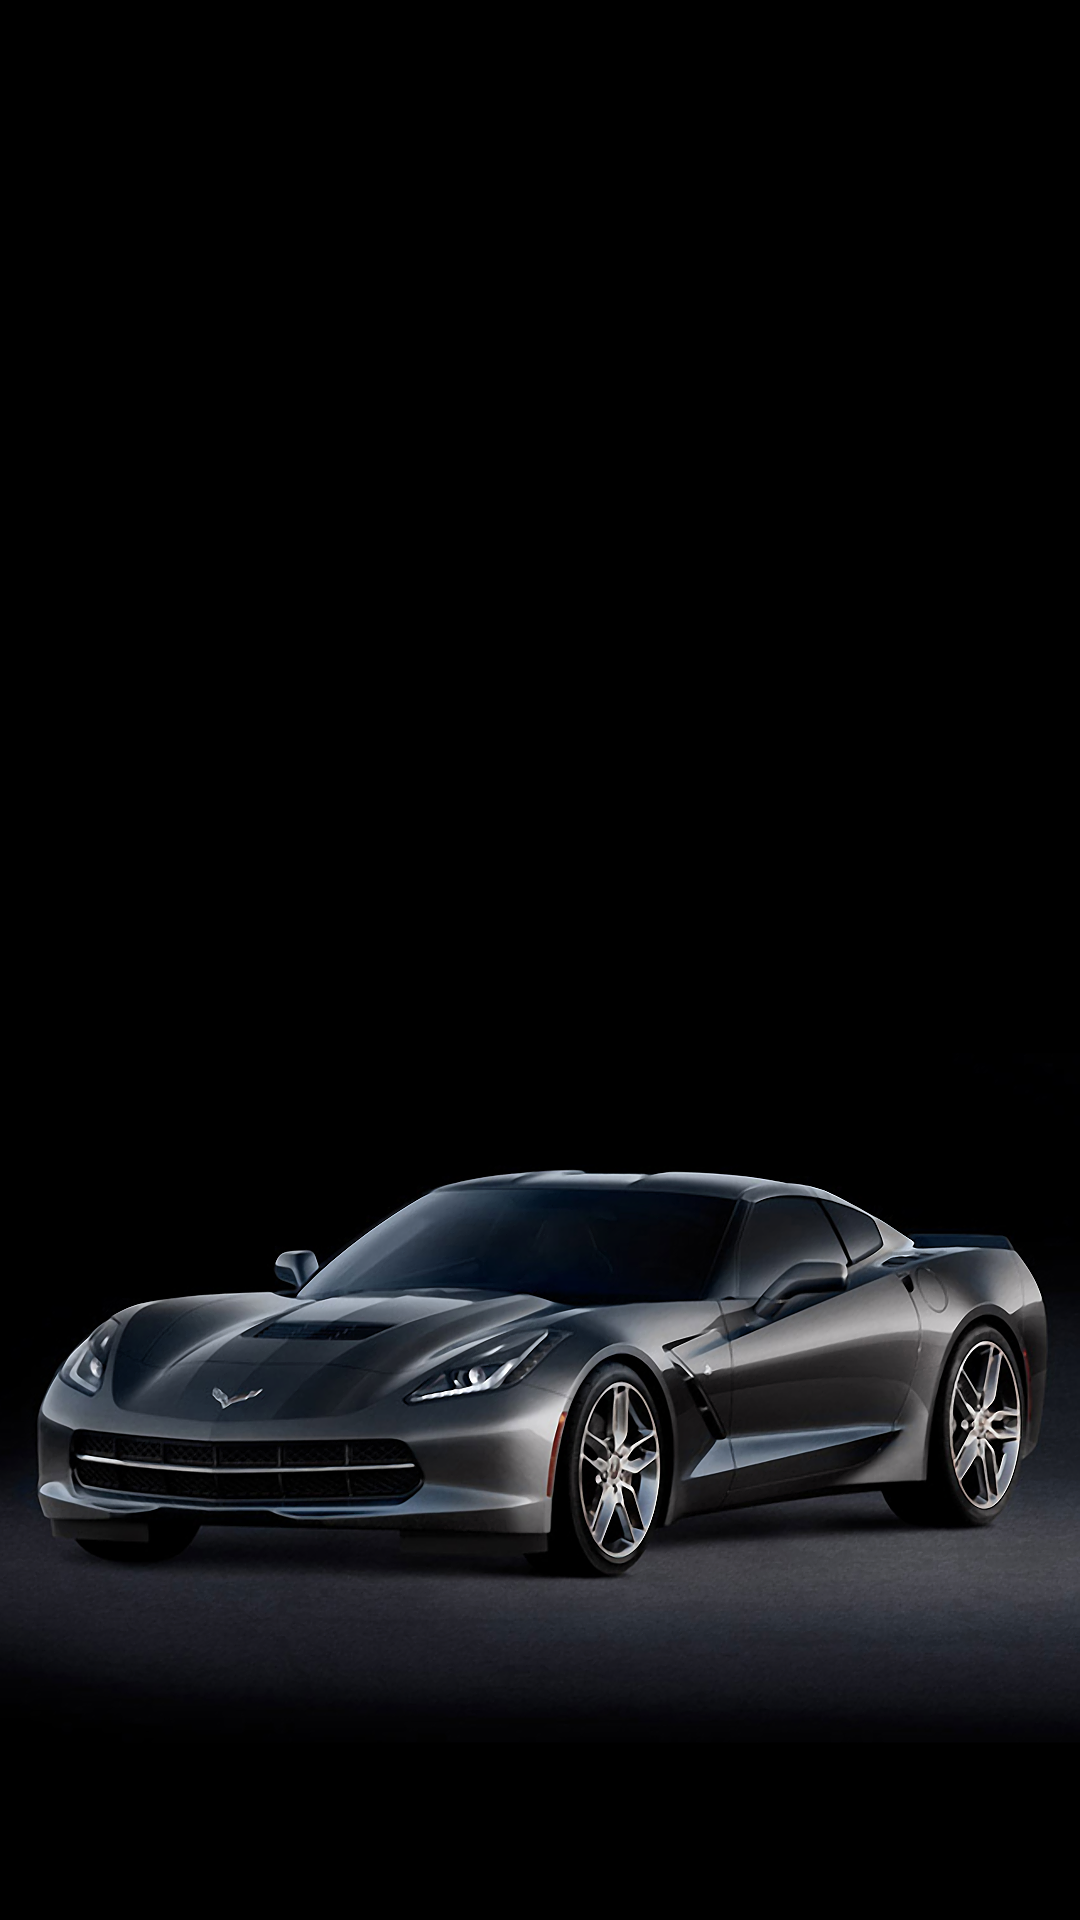 C7 Corvette Stingray Side IPhone 7 Wallpaper